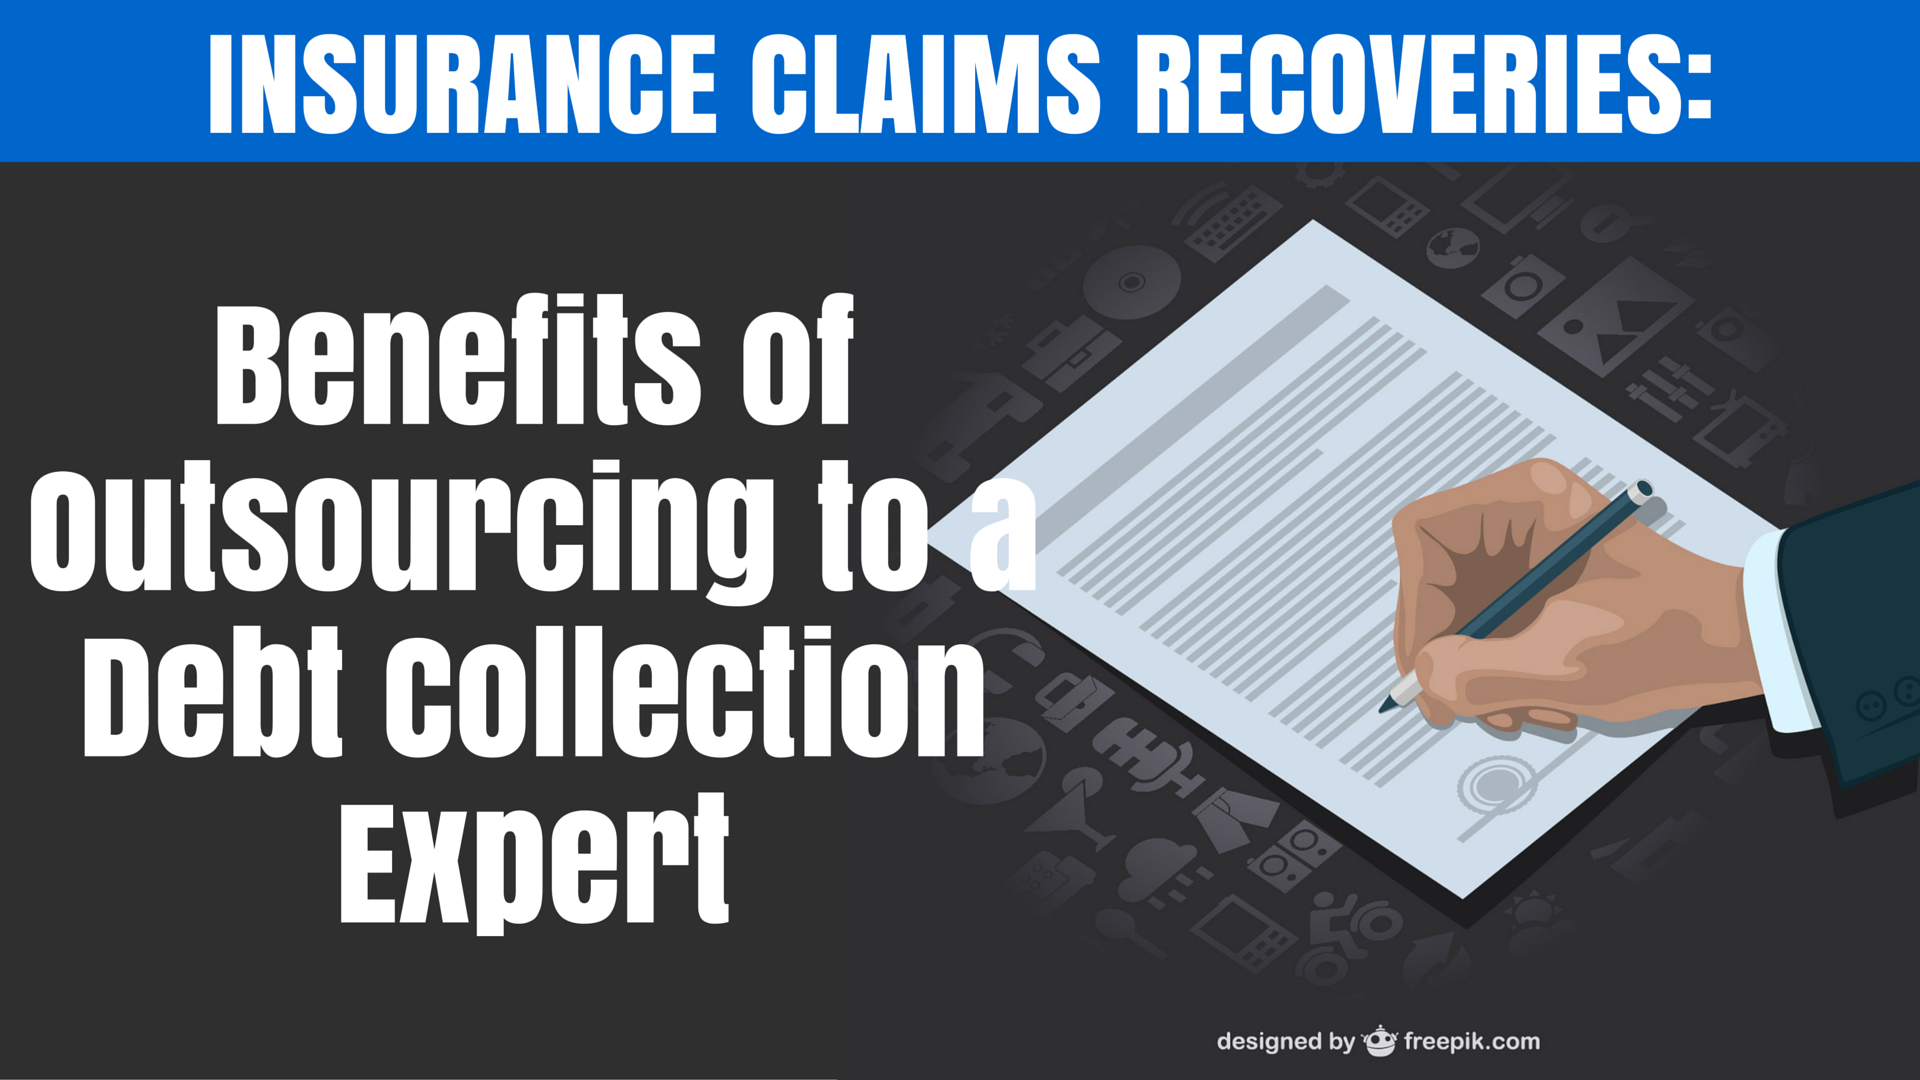 Insurance Claims Recoveries: Benefits of Outsourcing to a Debt Collection Expert